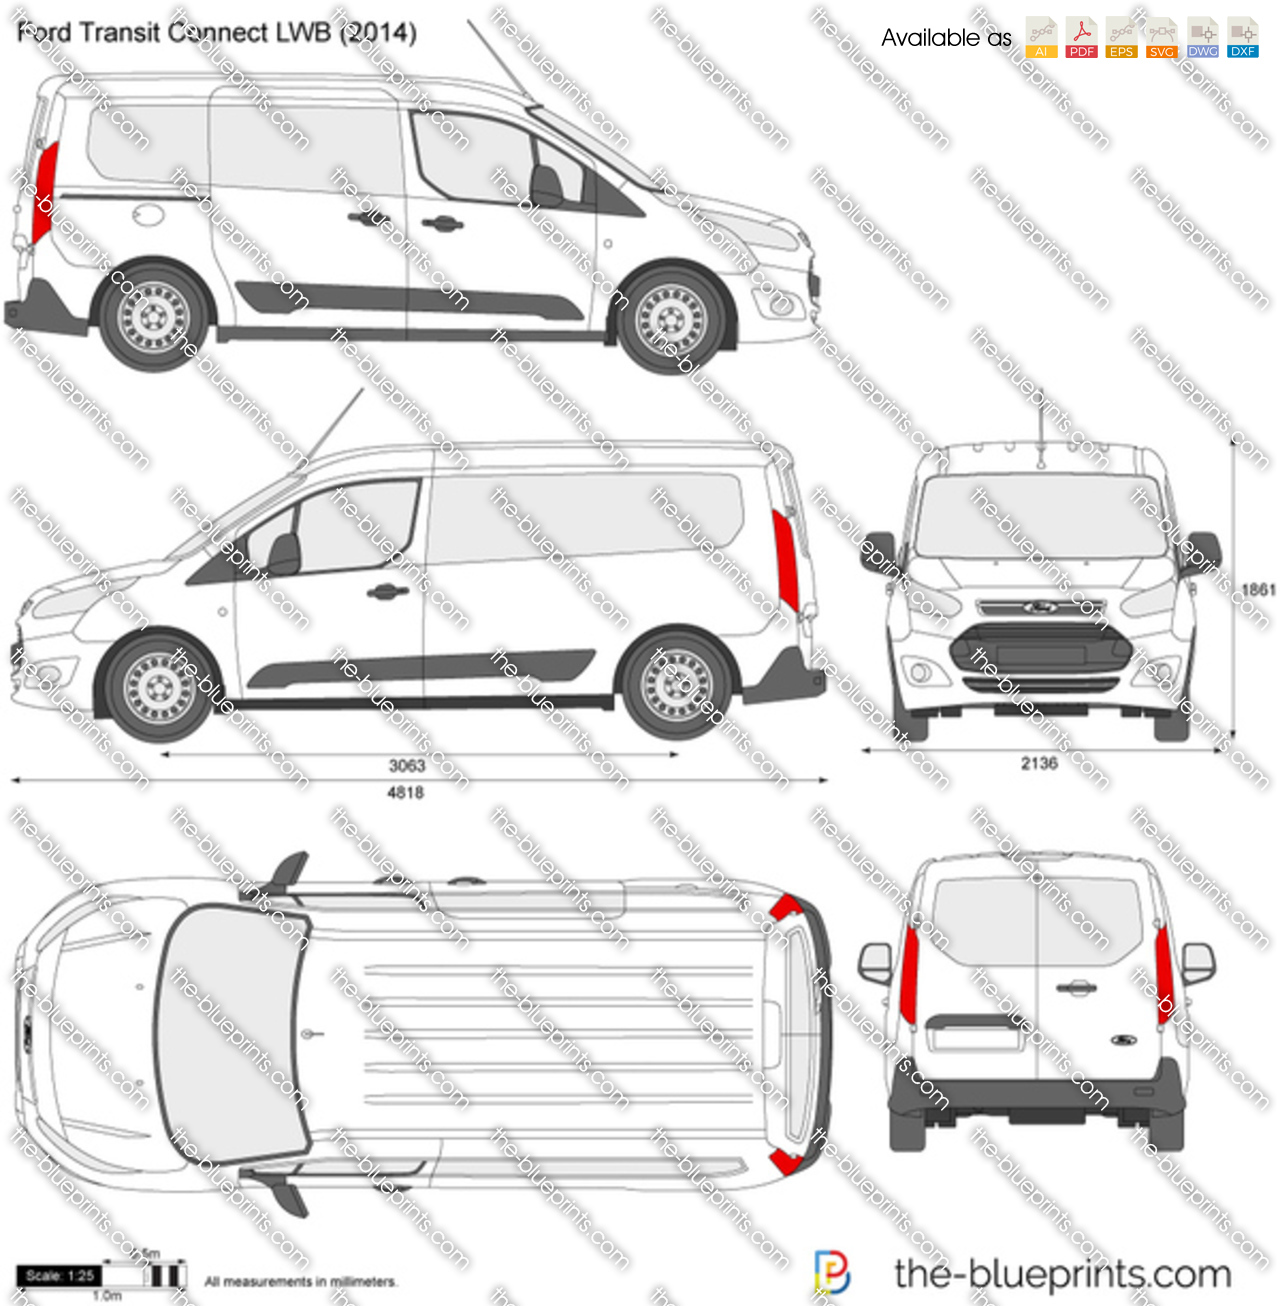 Ford Transit Connect LWB 2014